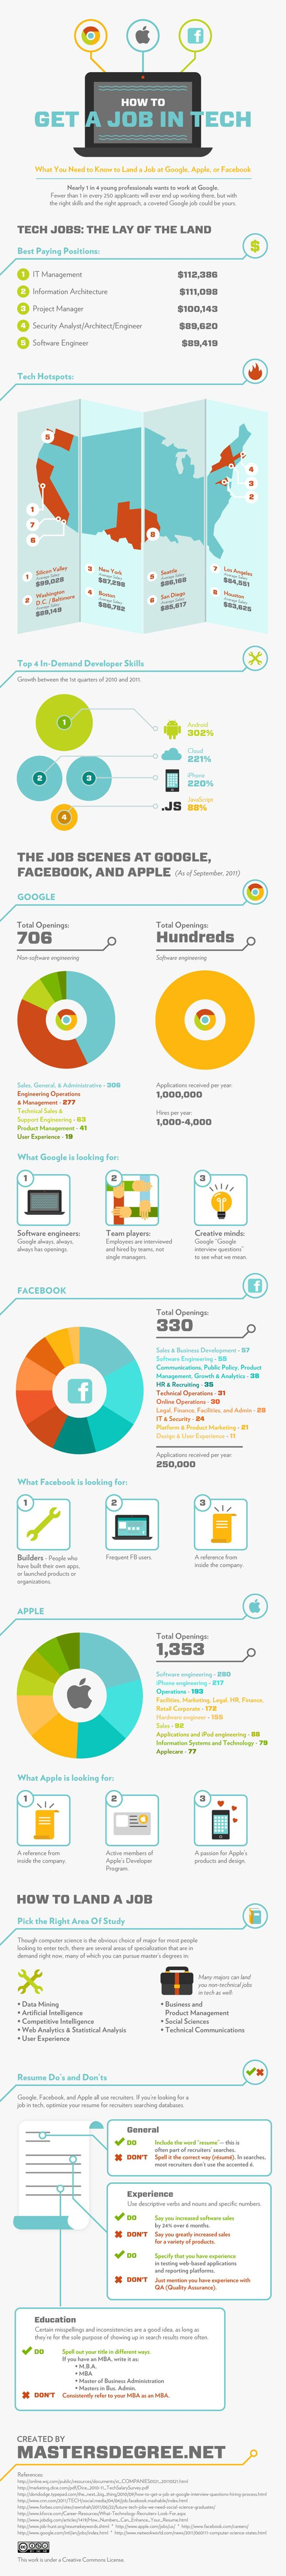 How To: Get A Job At Google, Apple or Facebook [Infographic]: Technology Infographic, Get A Job, Job Search, Website, Infographic Inspiration, Career Infographic, Tech Job, Tech Infographic, Career Stuff